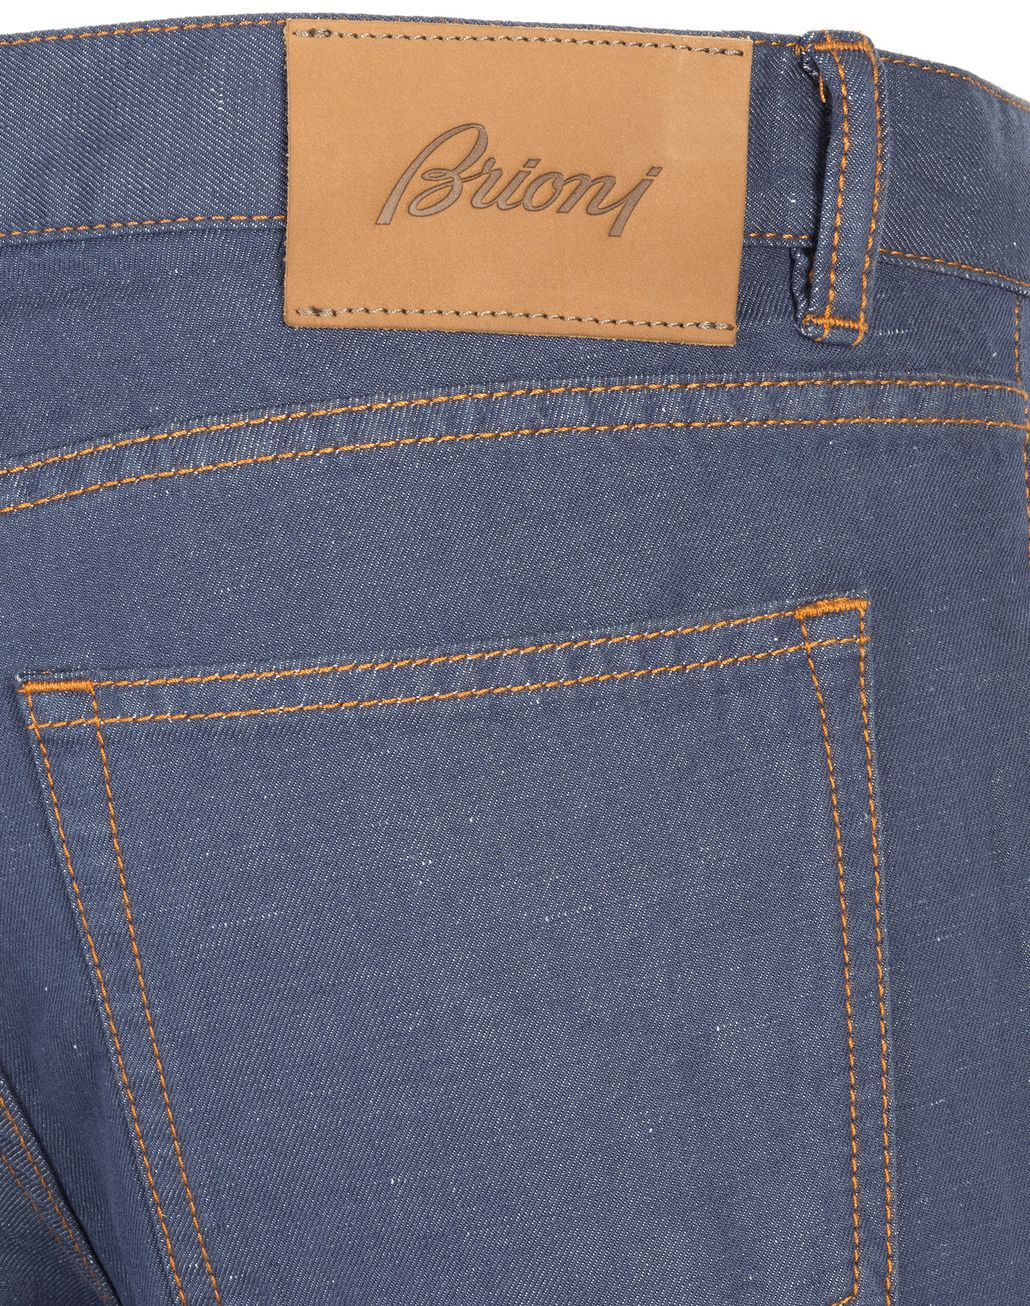 BRIONI Bluette Slim-Fit Cotton and Linen Aneto Jeans  Denim Man a